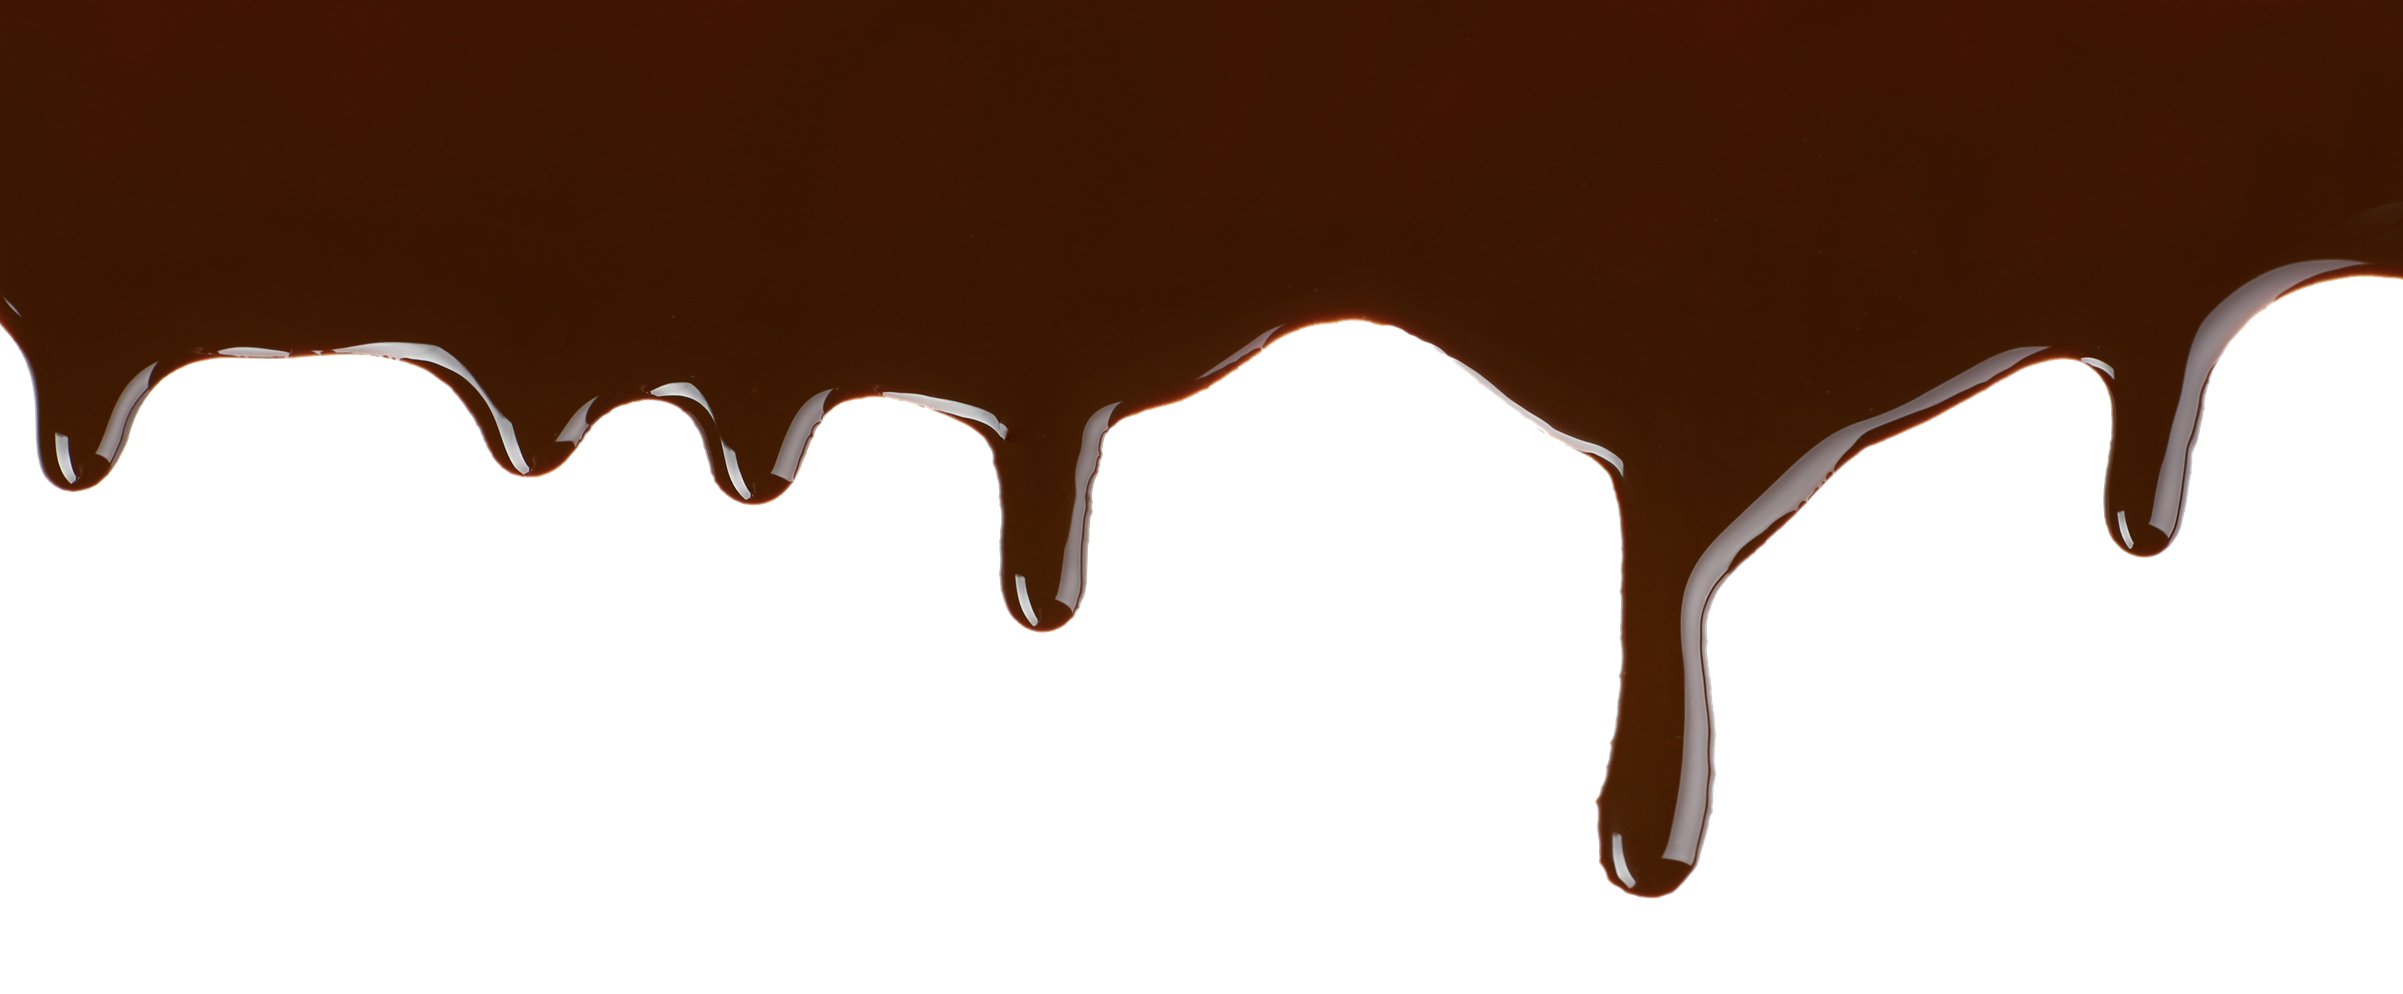 Chocolate PNG - 27292